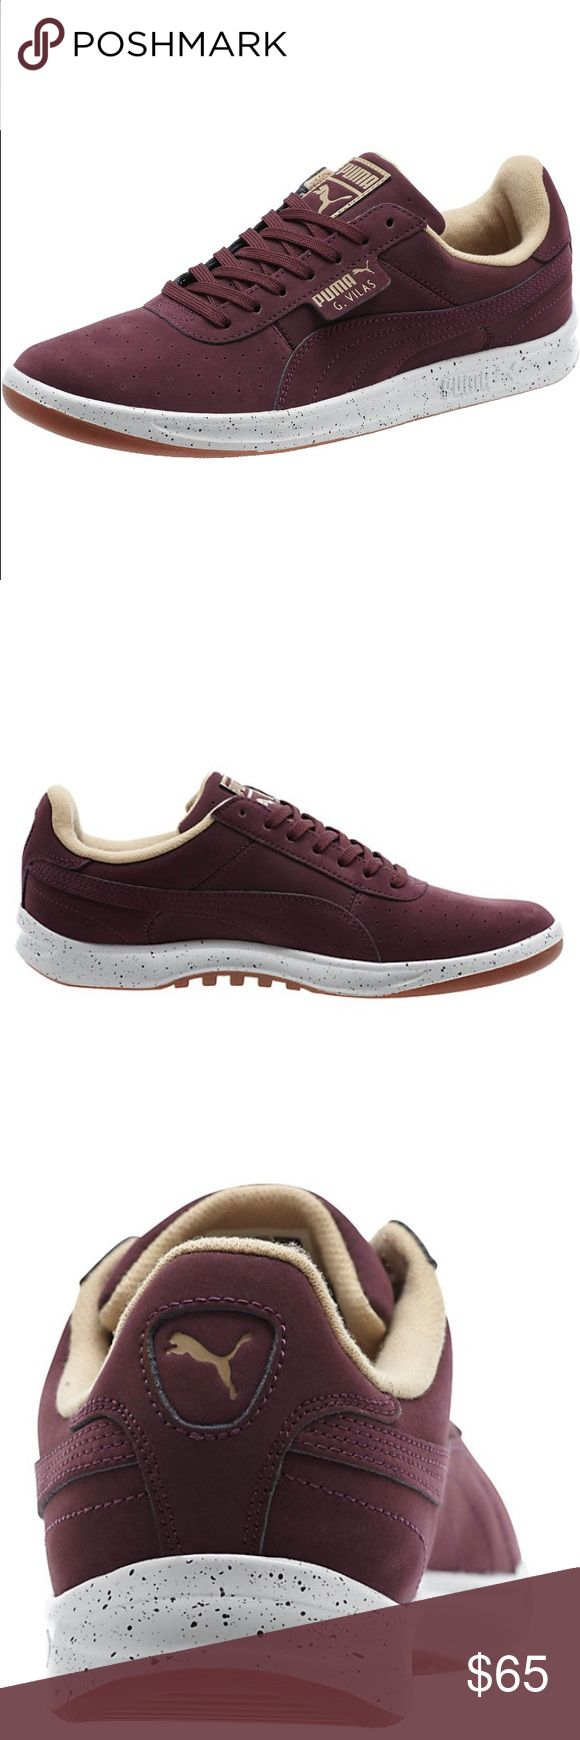 Puma G. Vilas Nubuck Burgundy Speckle Sneakers Brand new in box. Sz 7 Men Sz 8.5 Women Puma Shoes Sneakers